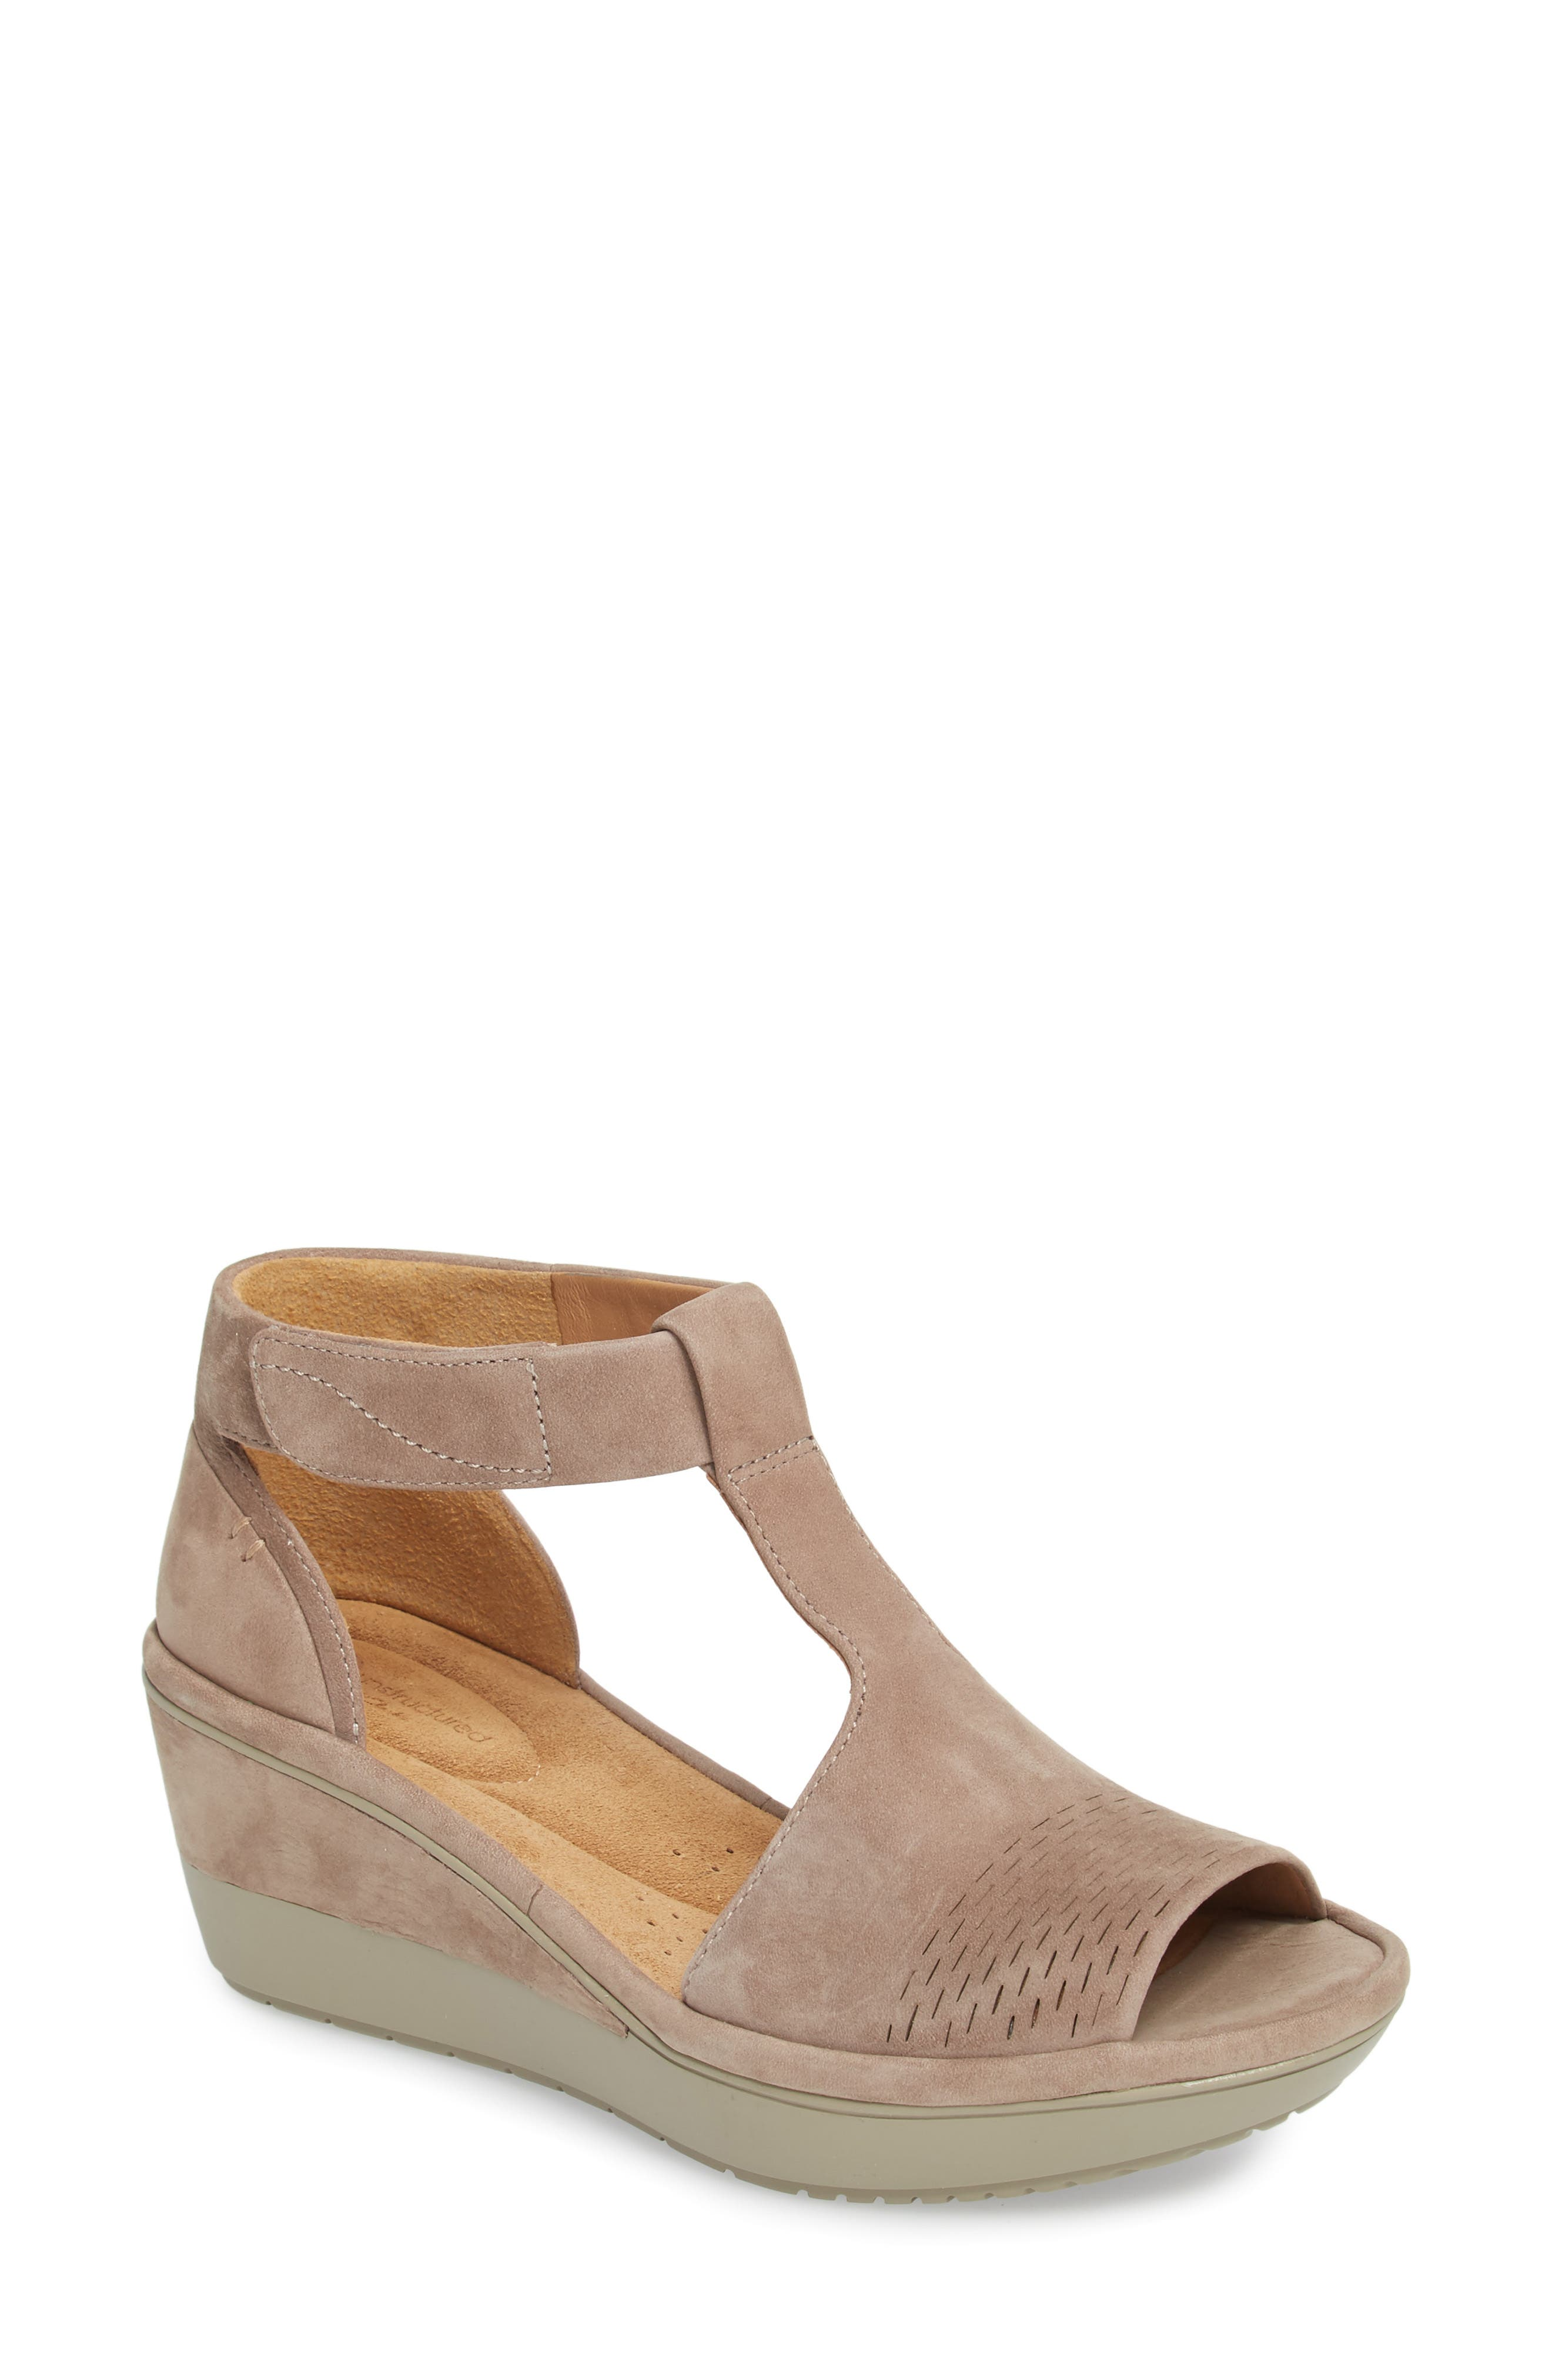 Wynnmere Avah T-Strap Wedge Sandal,                         Main,                         color, Warm Grey Nubuck